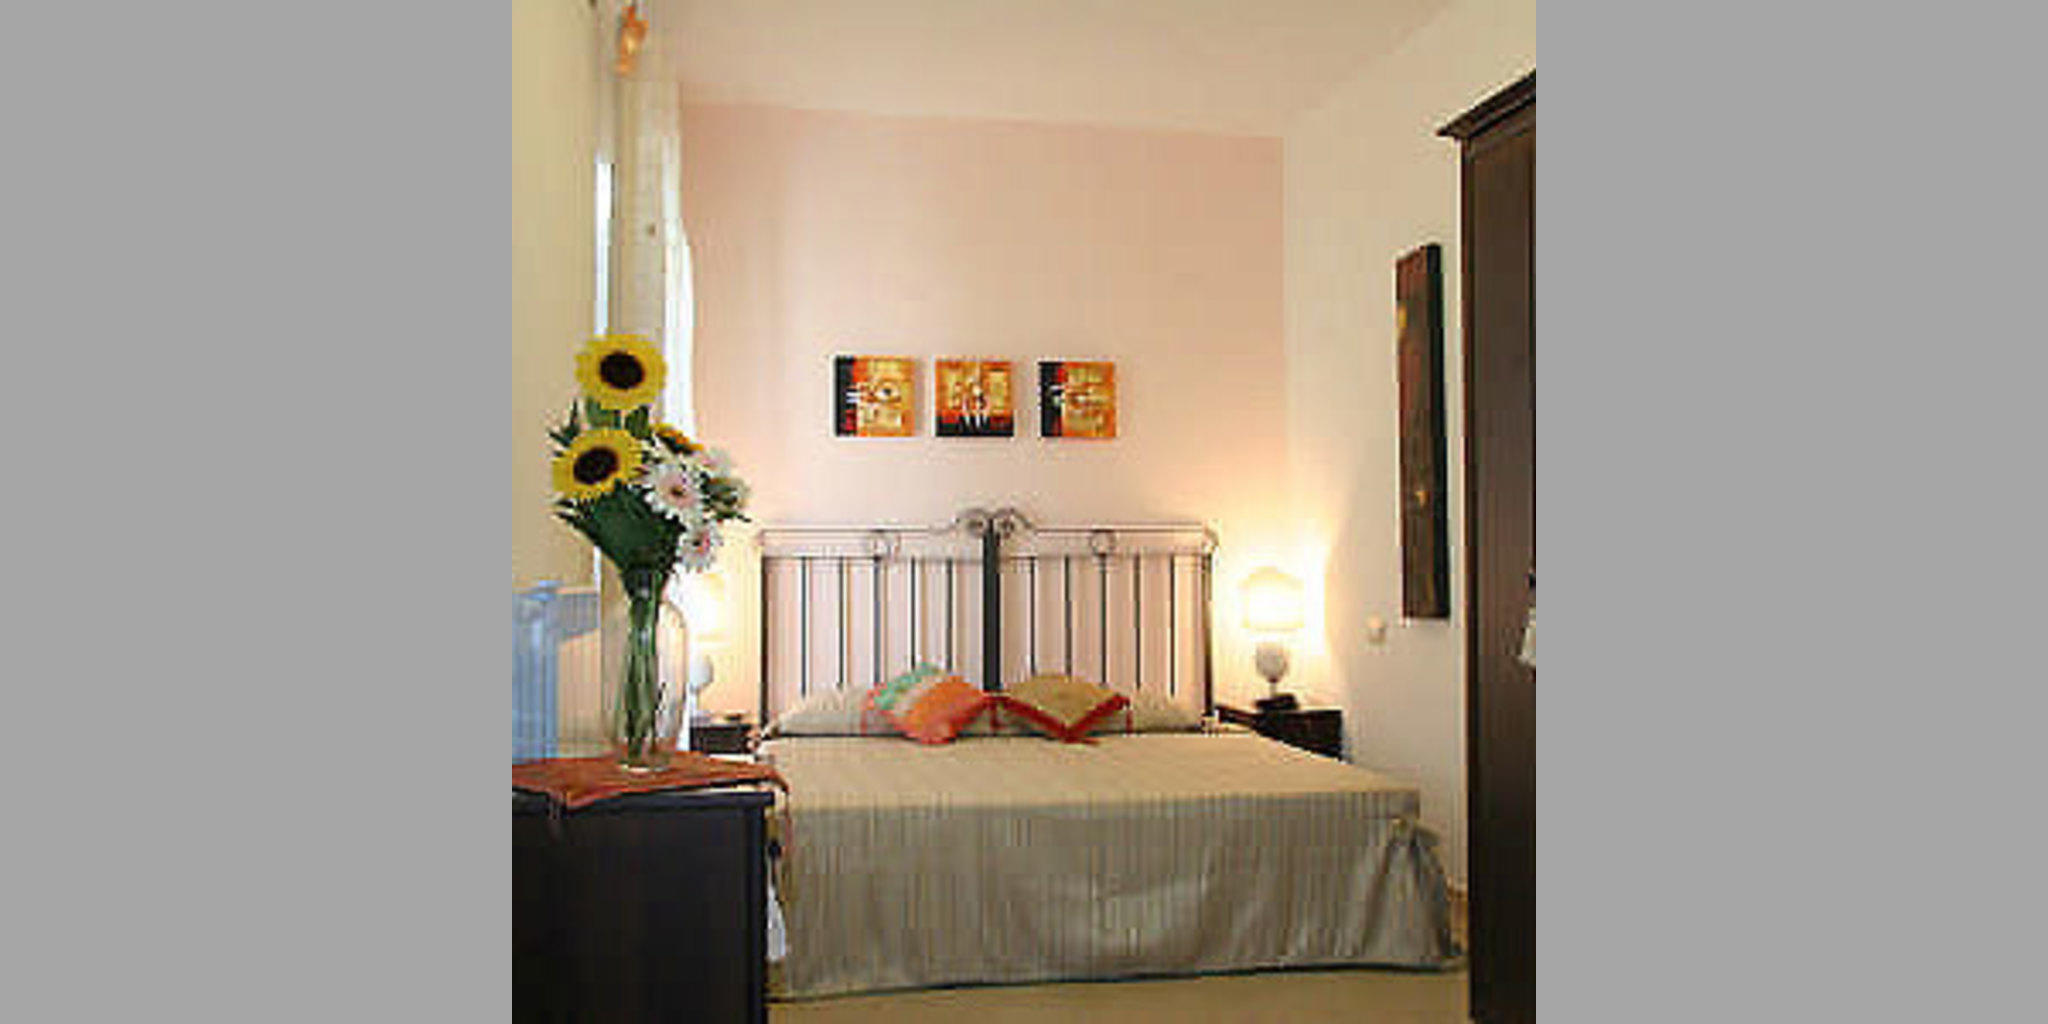 Bed & Breakfast Caltagirone - Caltagirone  Roma